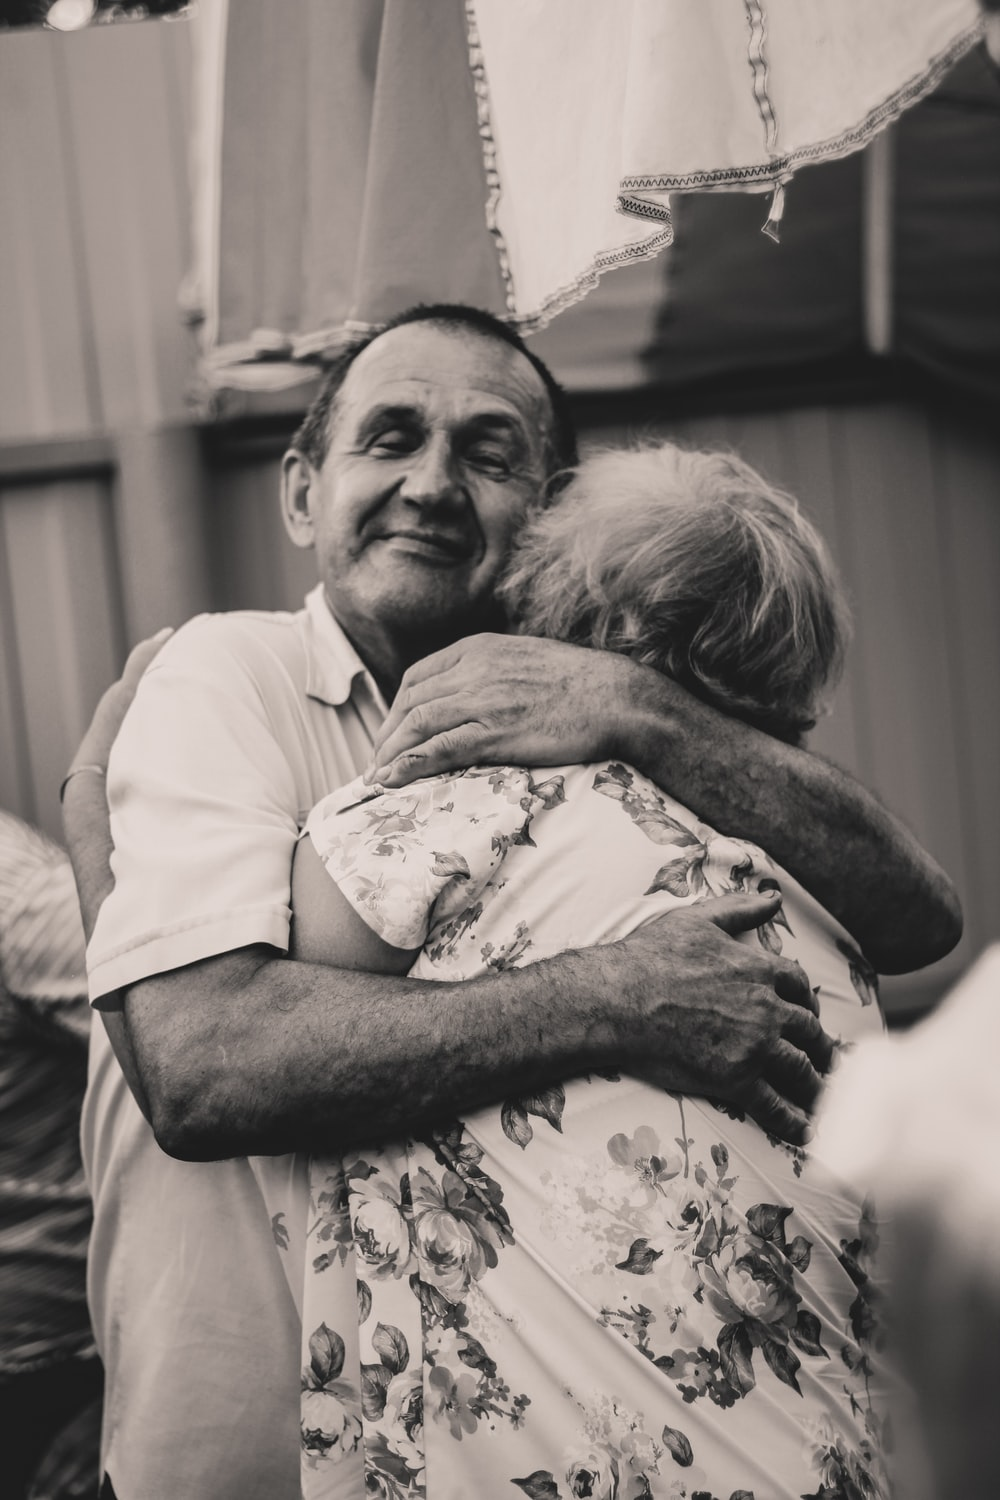 grayscale photography of man and woman embracing